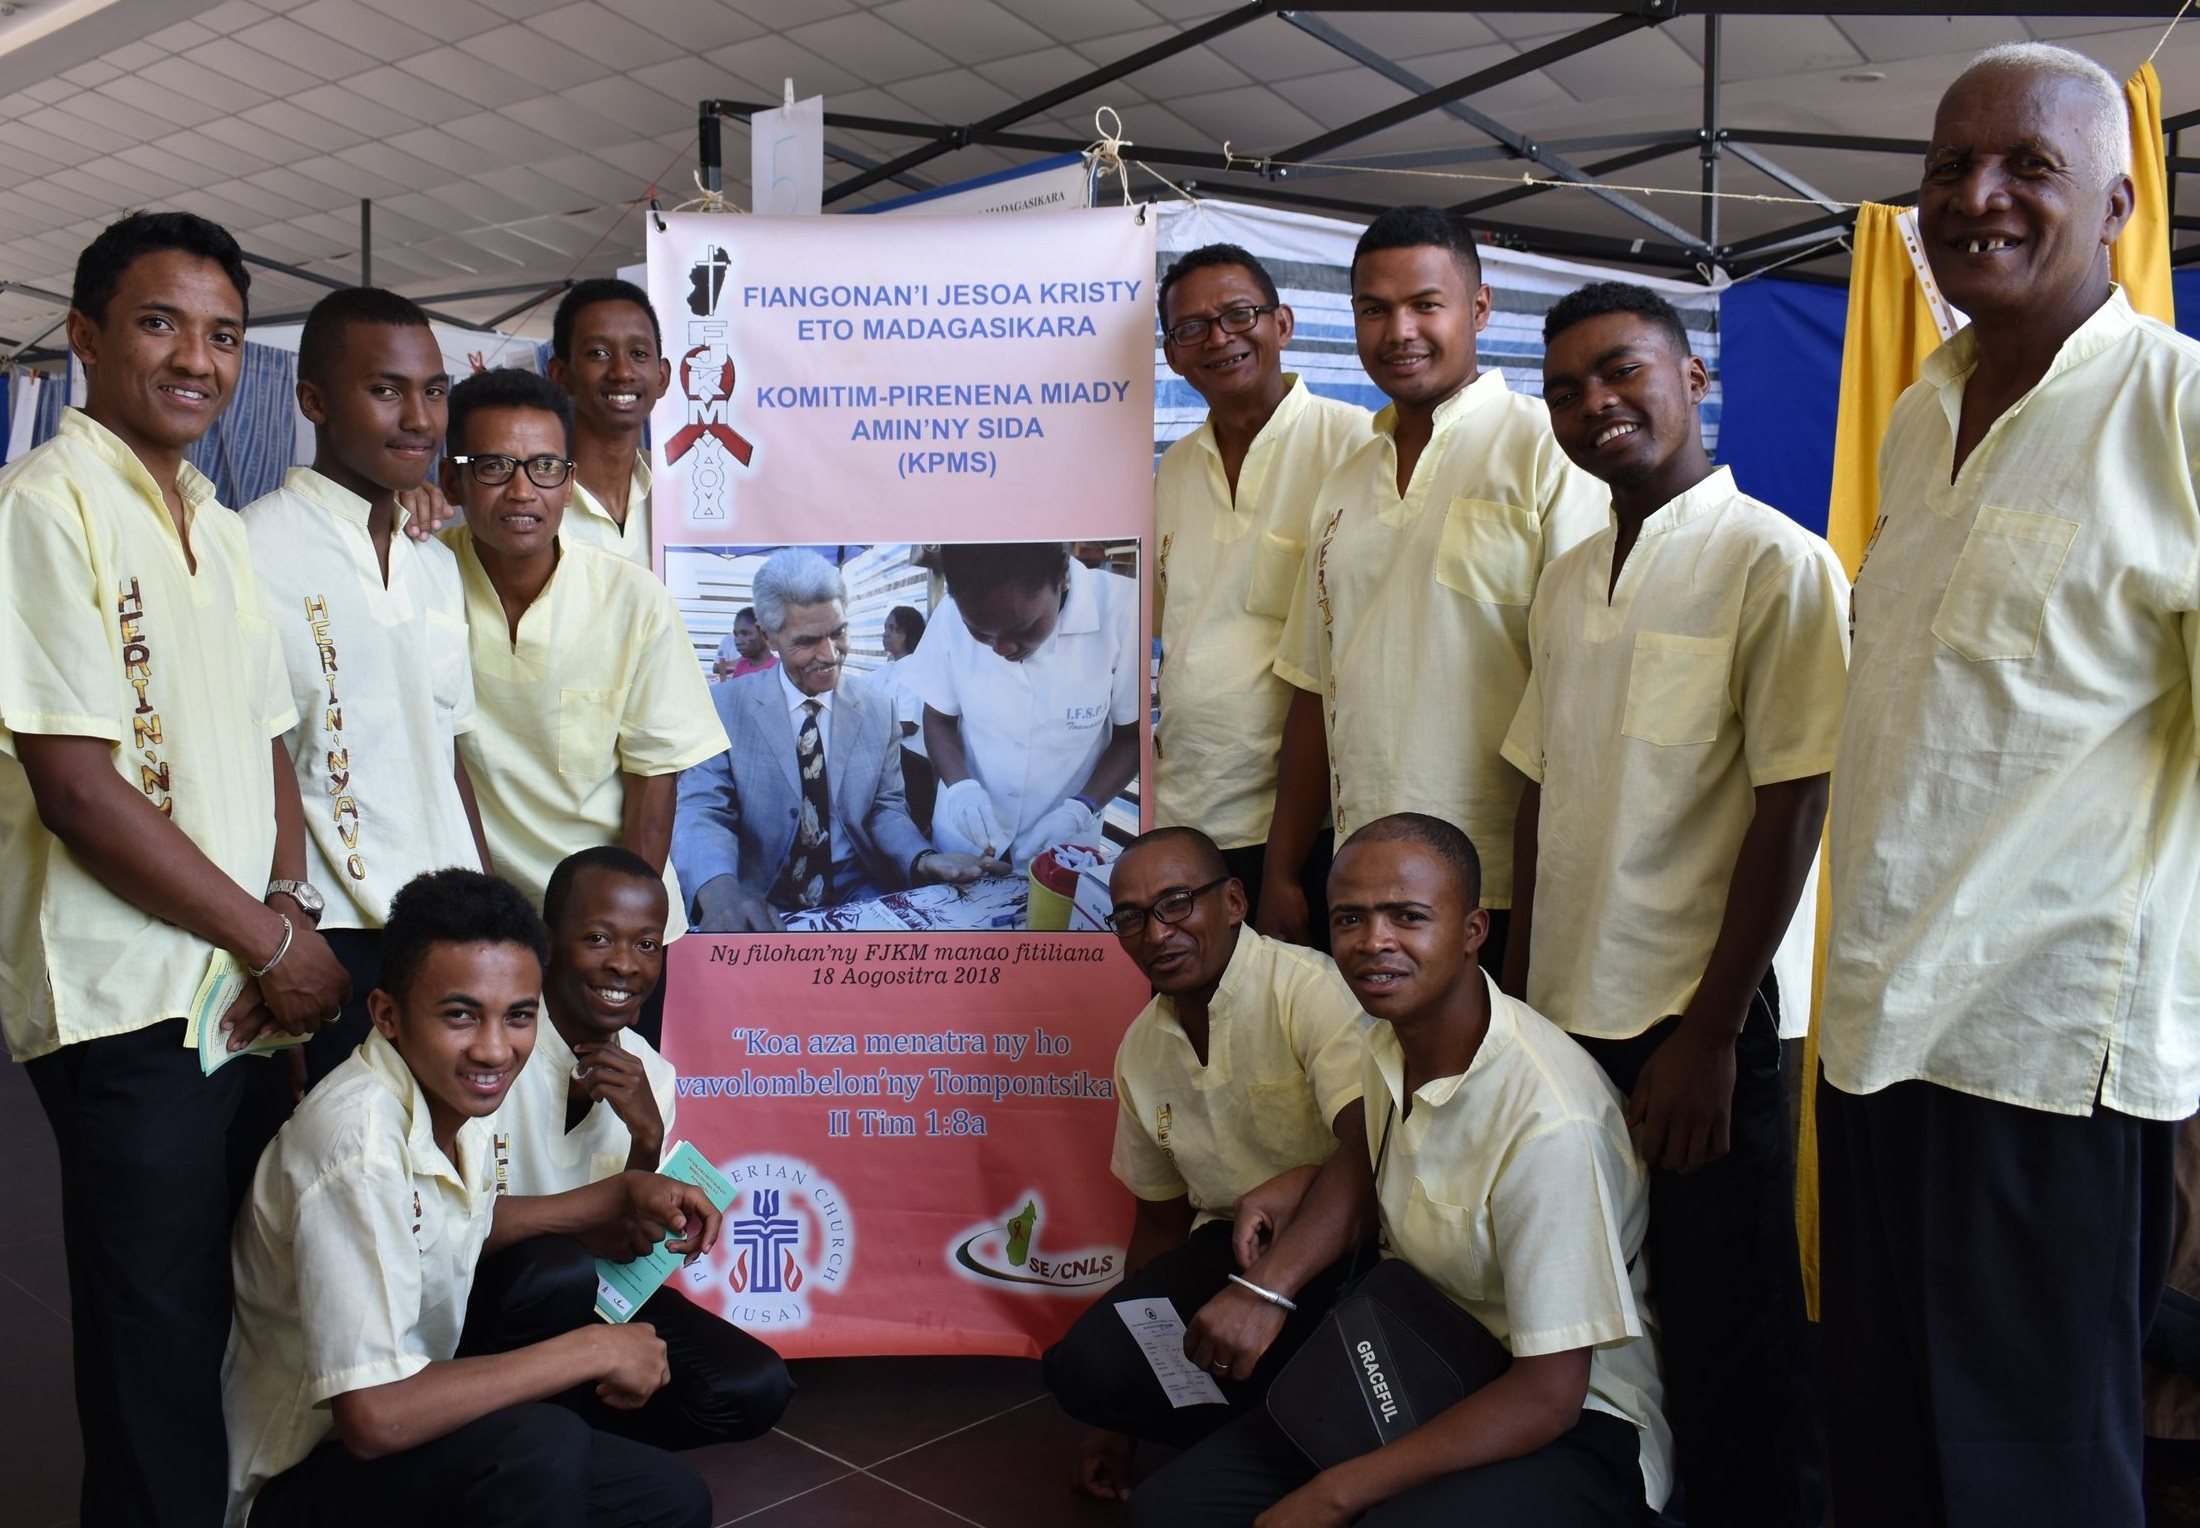 The whole choir got tested for HIV during an FJKM fair following the FJKM president's example.